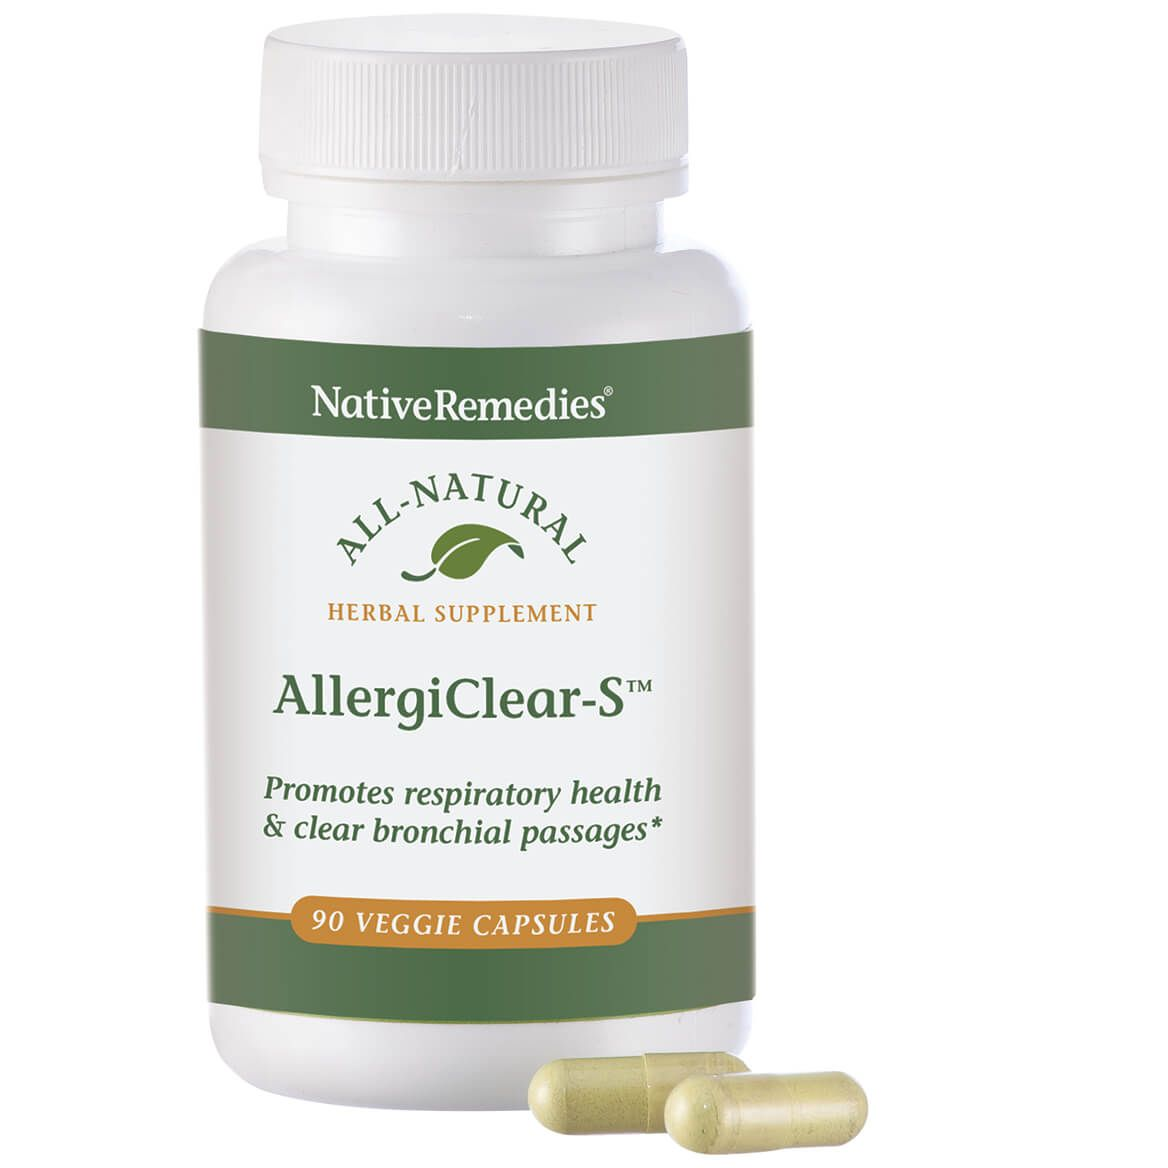 NativeRemedies® AllergiClear-S™-351038